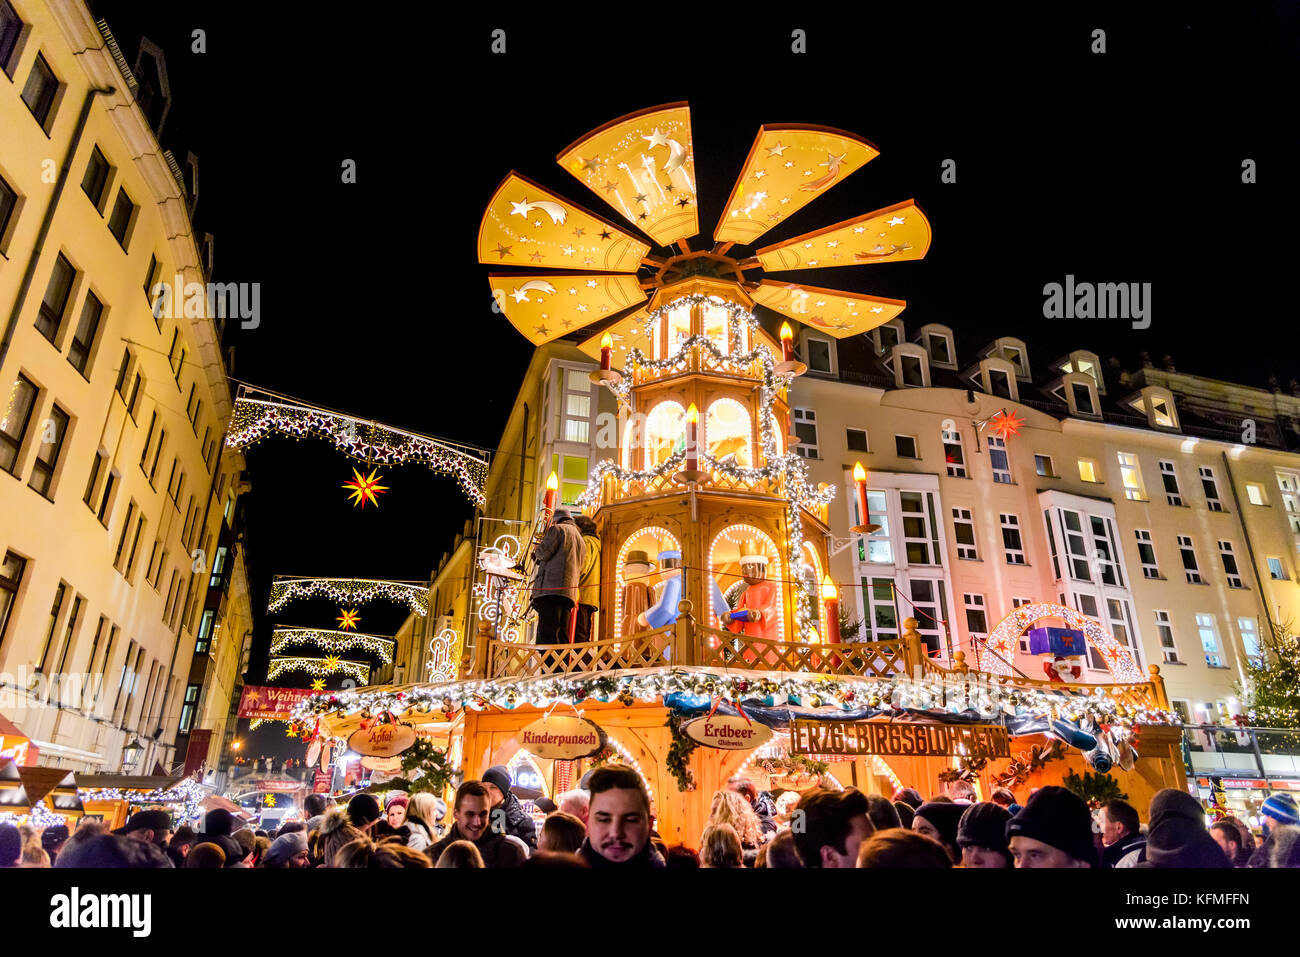 DRESDEN, SAXONY / GERMANY -  17 DECEMBER 2016: People visit Christmas Markets in Dresden, Germany. Christmas fair, - Stock Image